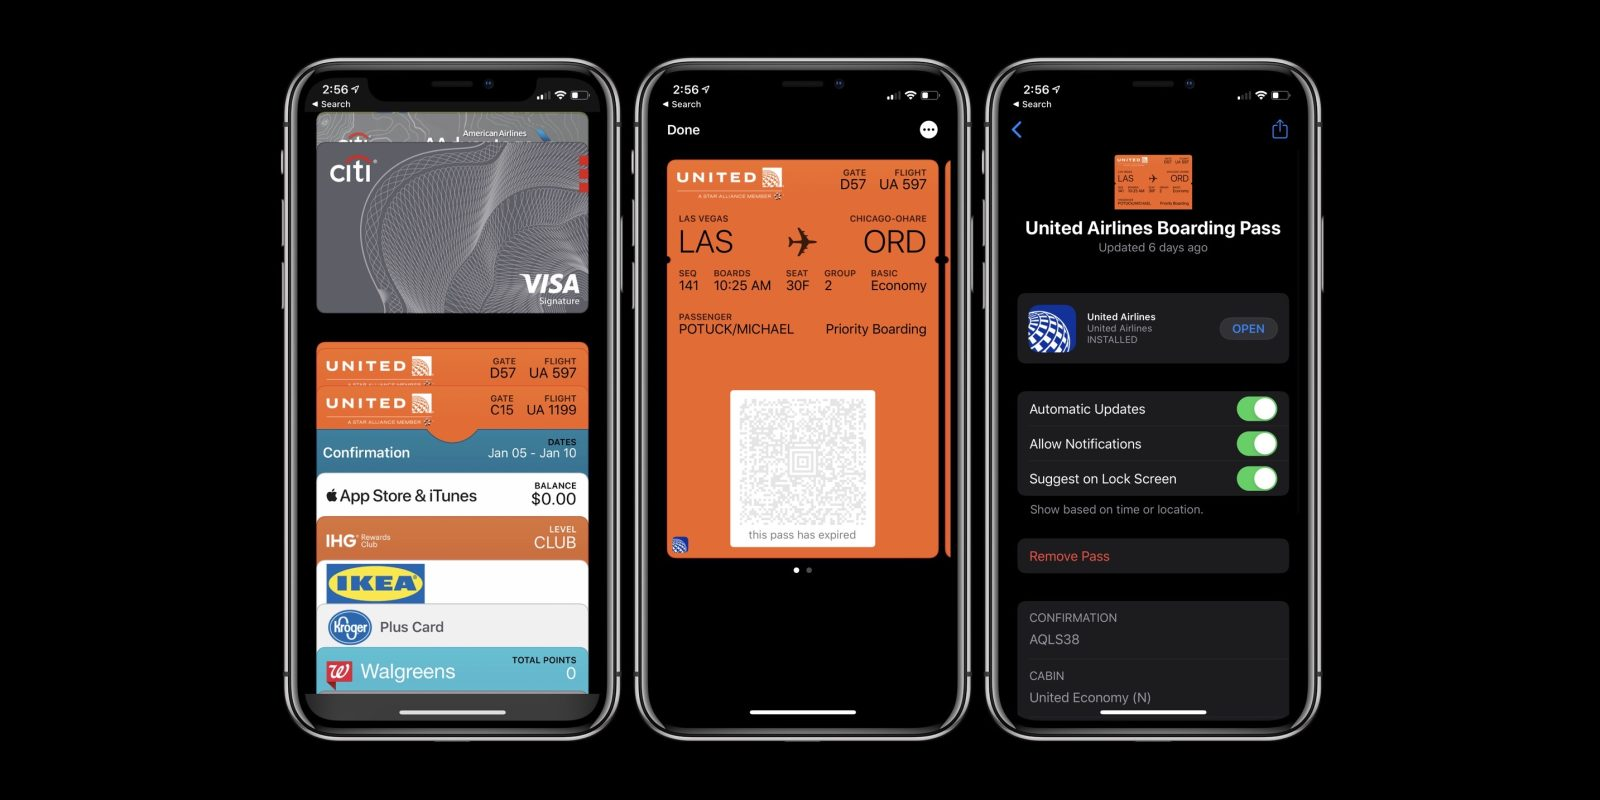 How to organize and delete Apple Pay cards and passes